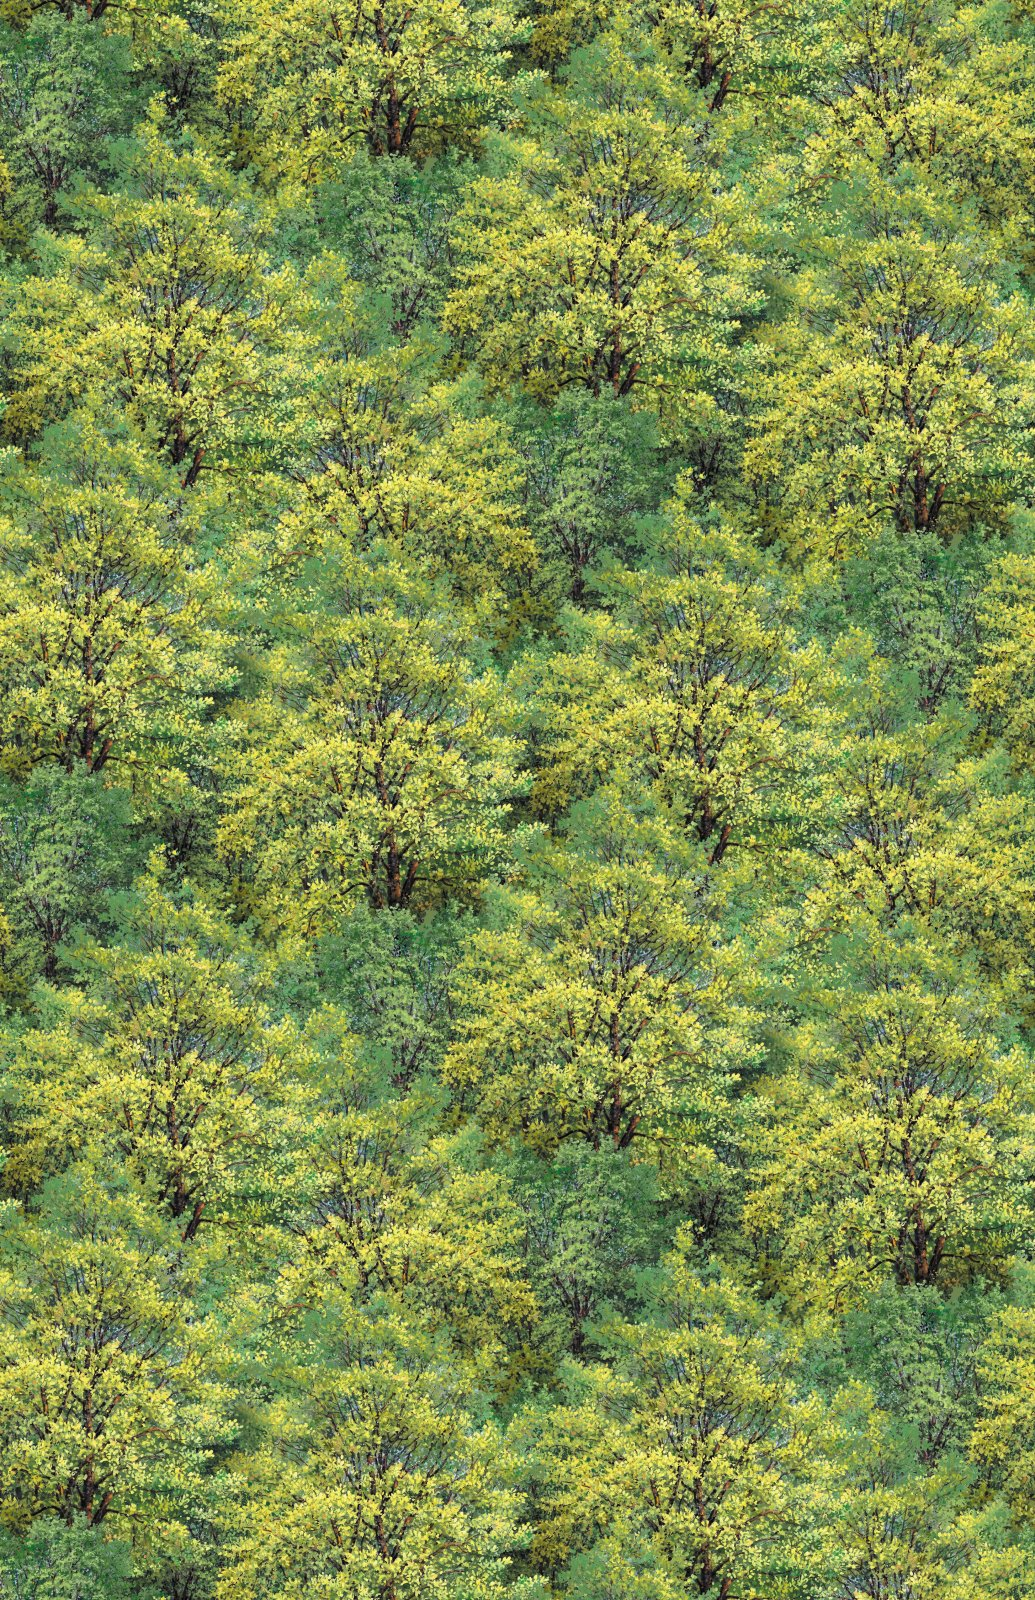 Trees - yellow and green